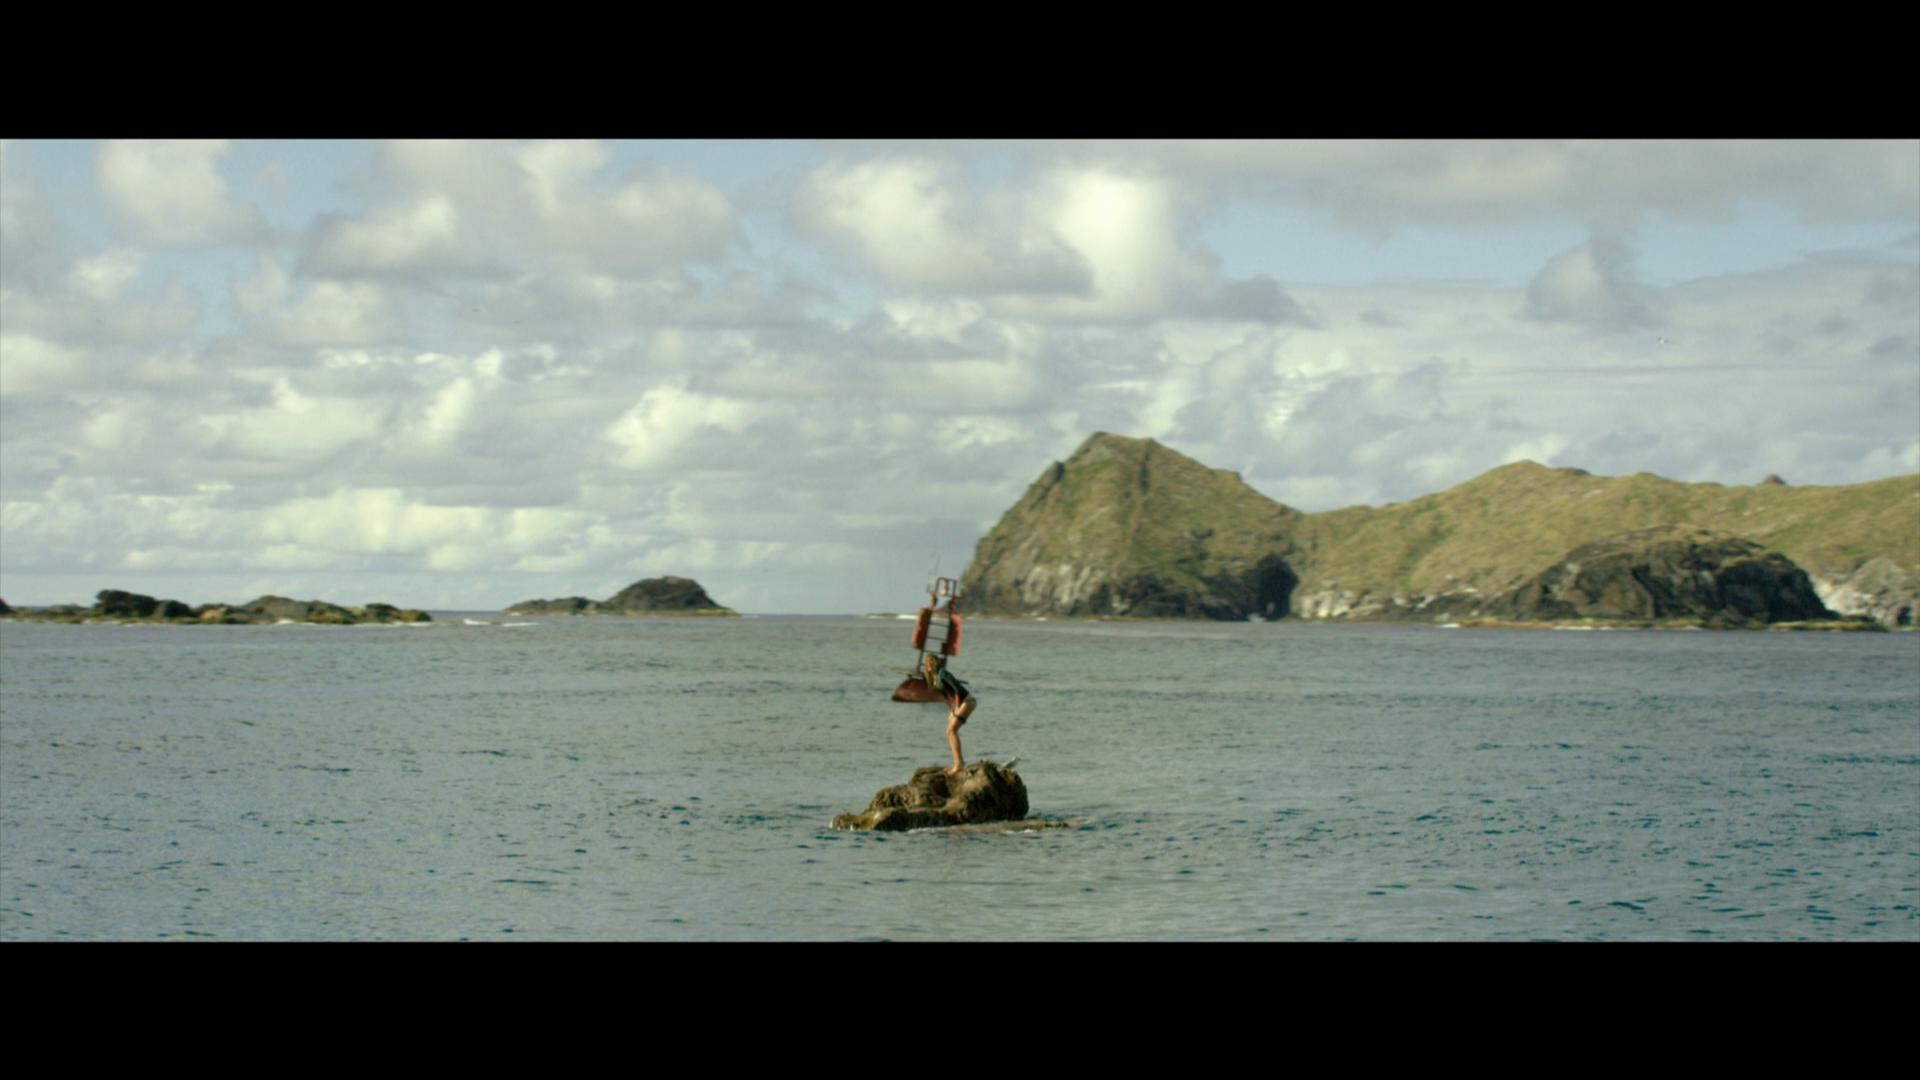 The Shallows - 4K UHD Review - ReDVDit